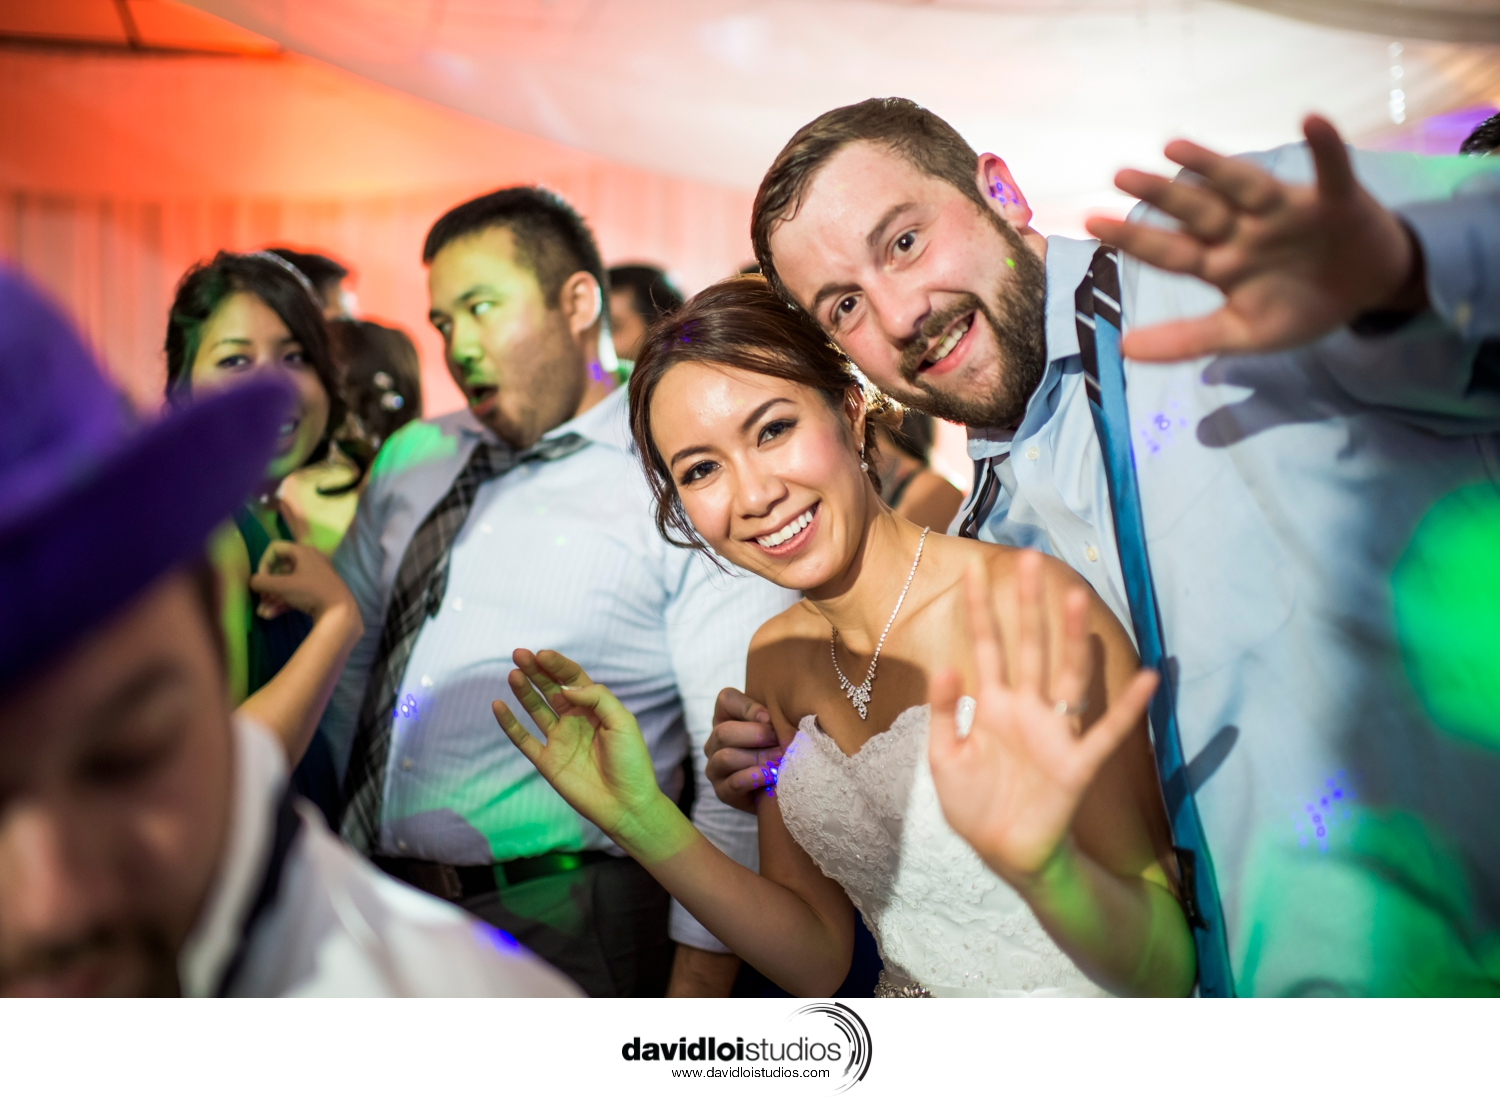 Kowloon Wedding Arlington TX-46.jpg